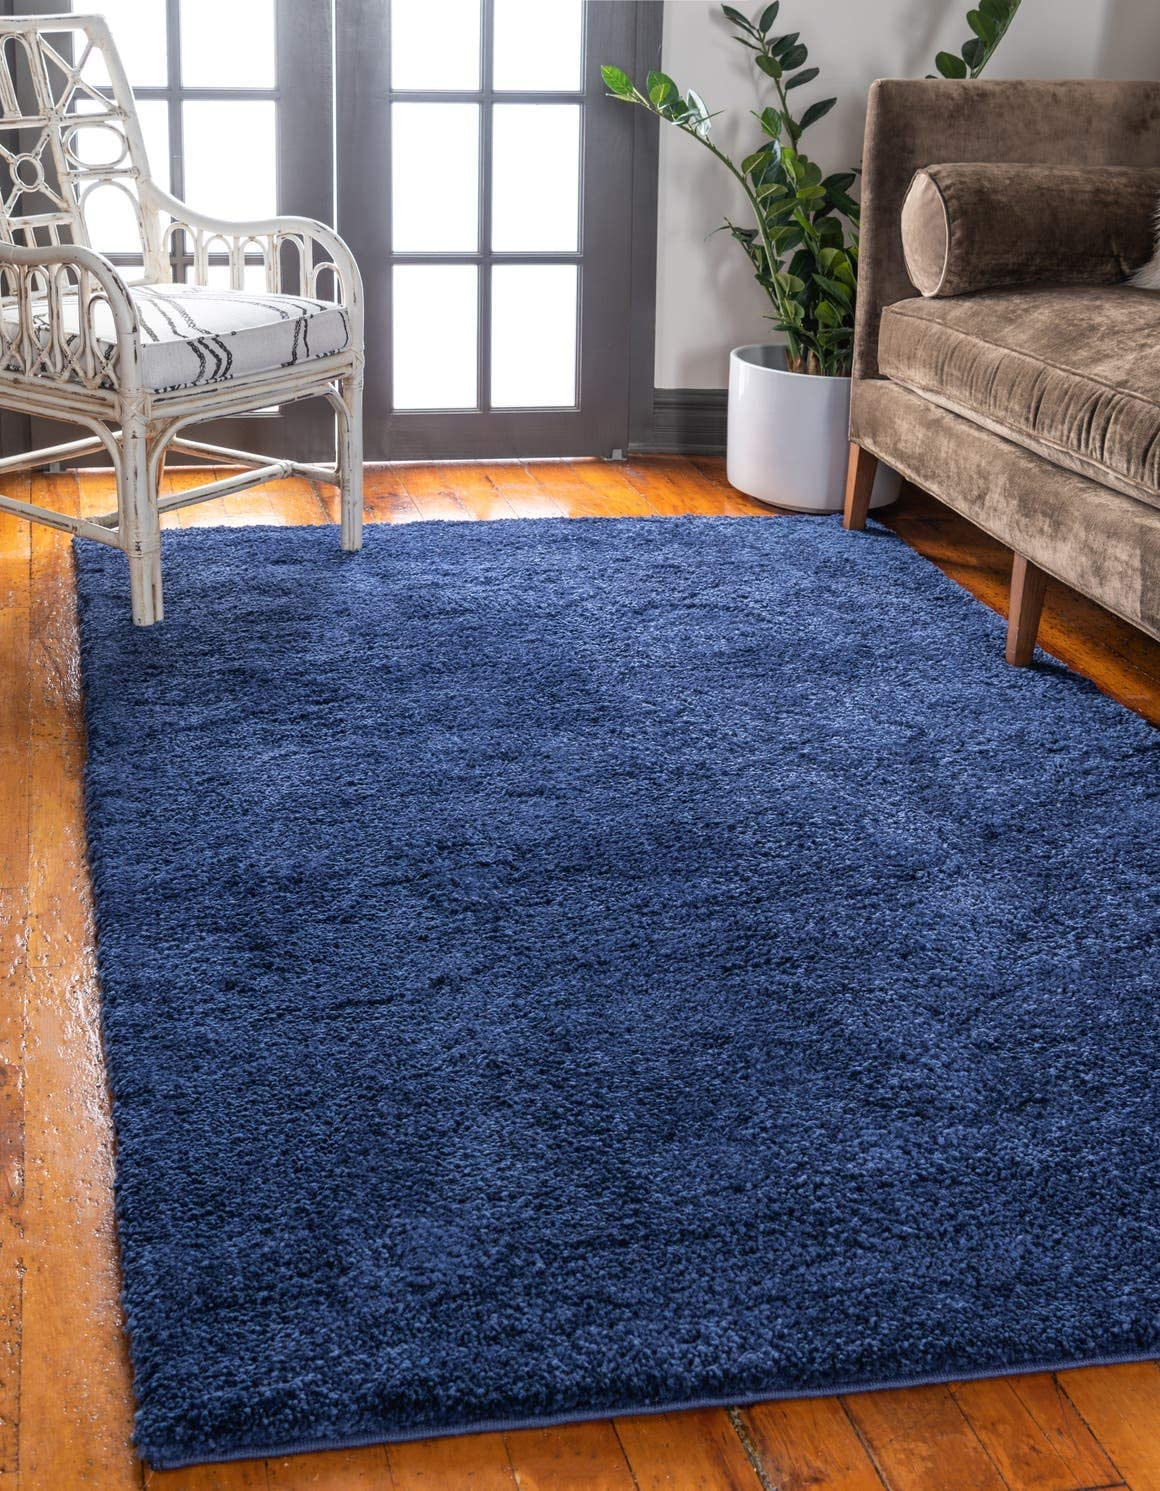 Unique Loom Solo Collection Solid Plush Kids Navy Blue Area Rug 8 0 x 10 0